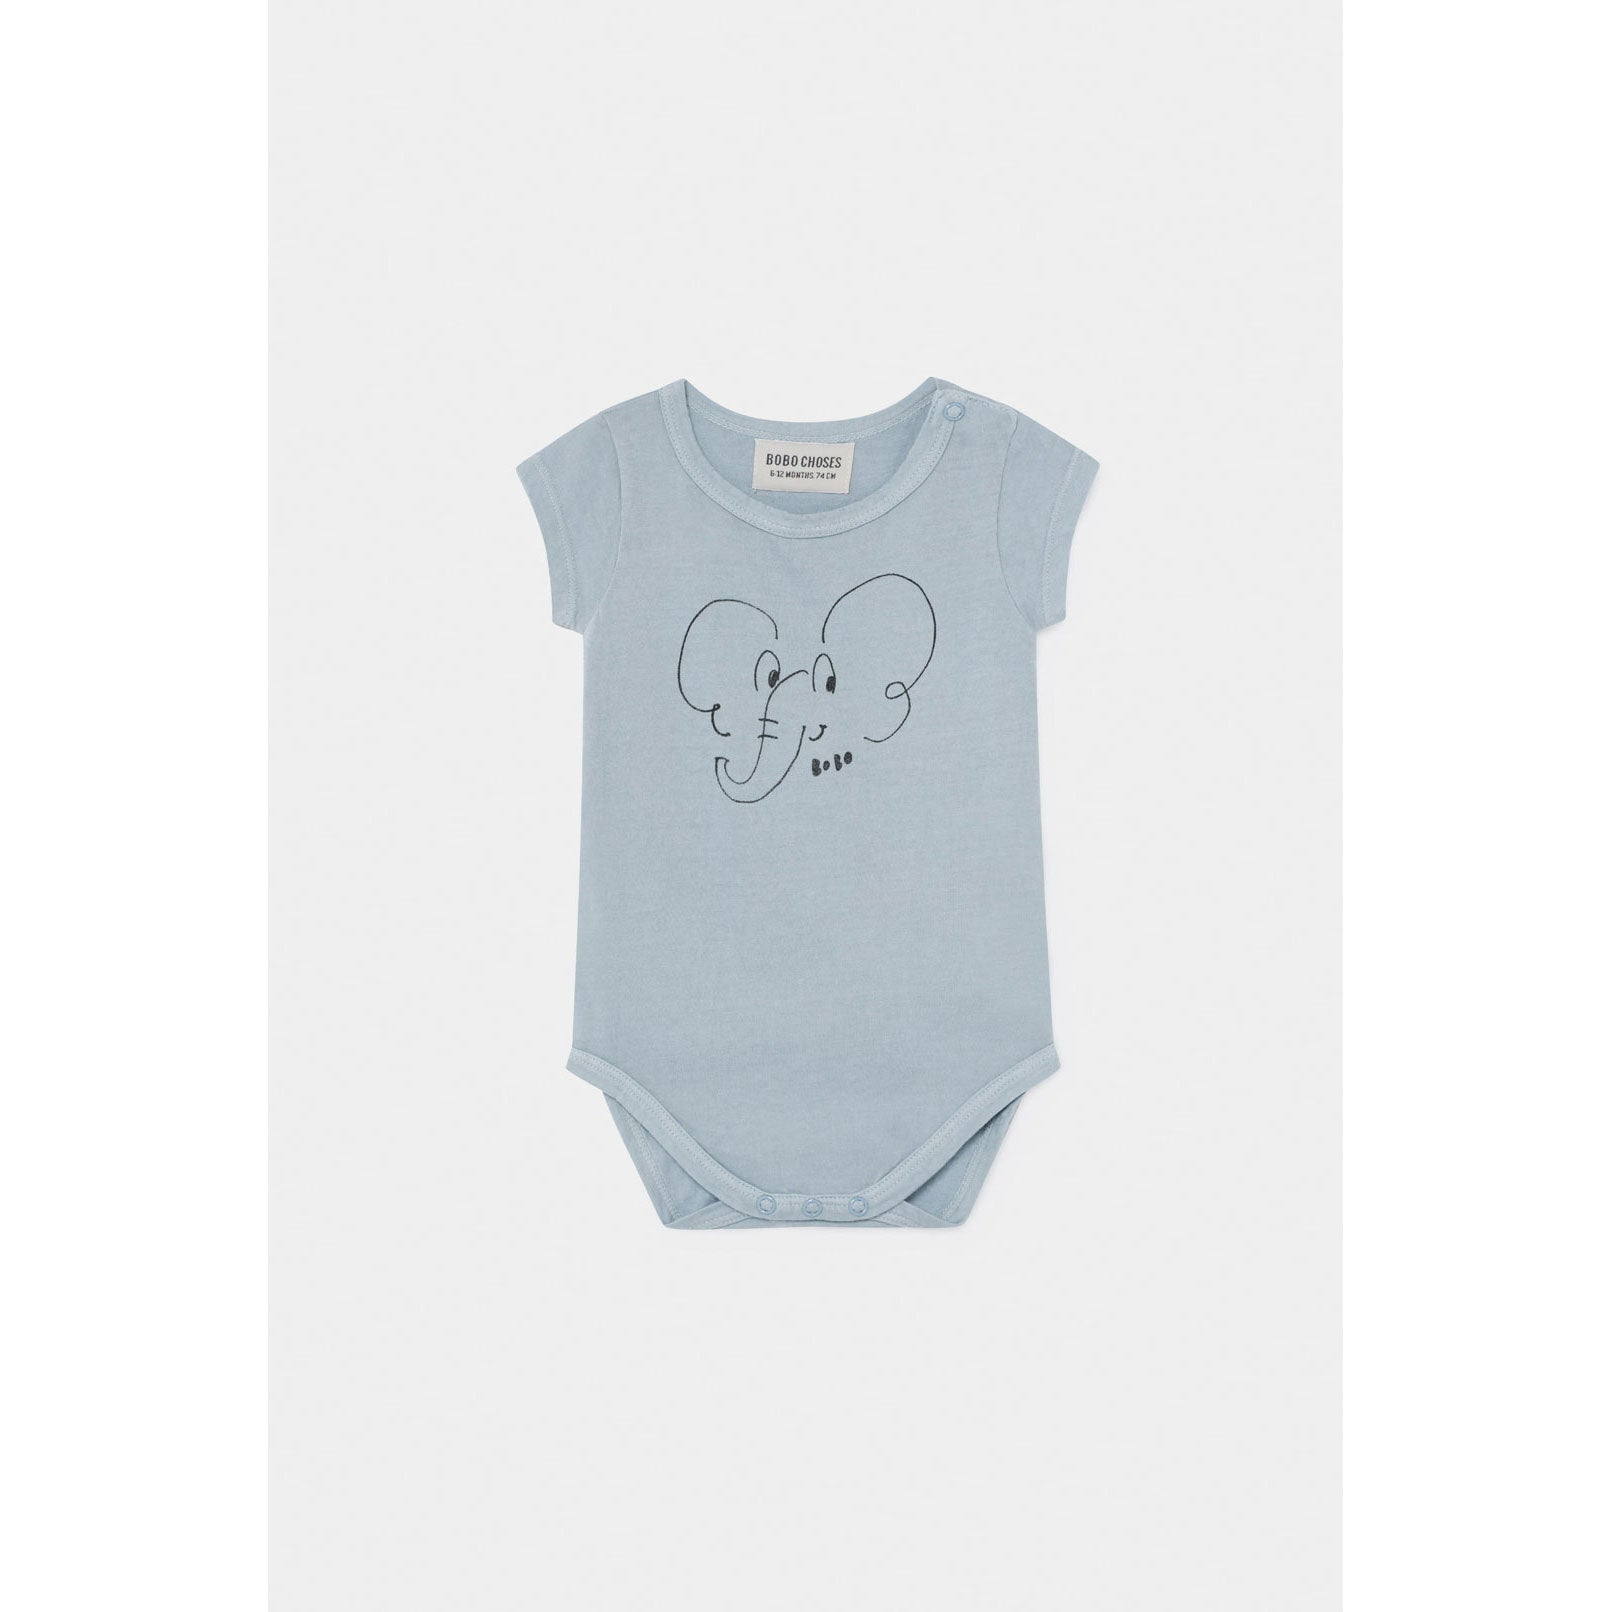 Bobo Choses Elephant Short Sleeve Bodysuit